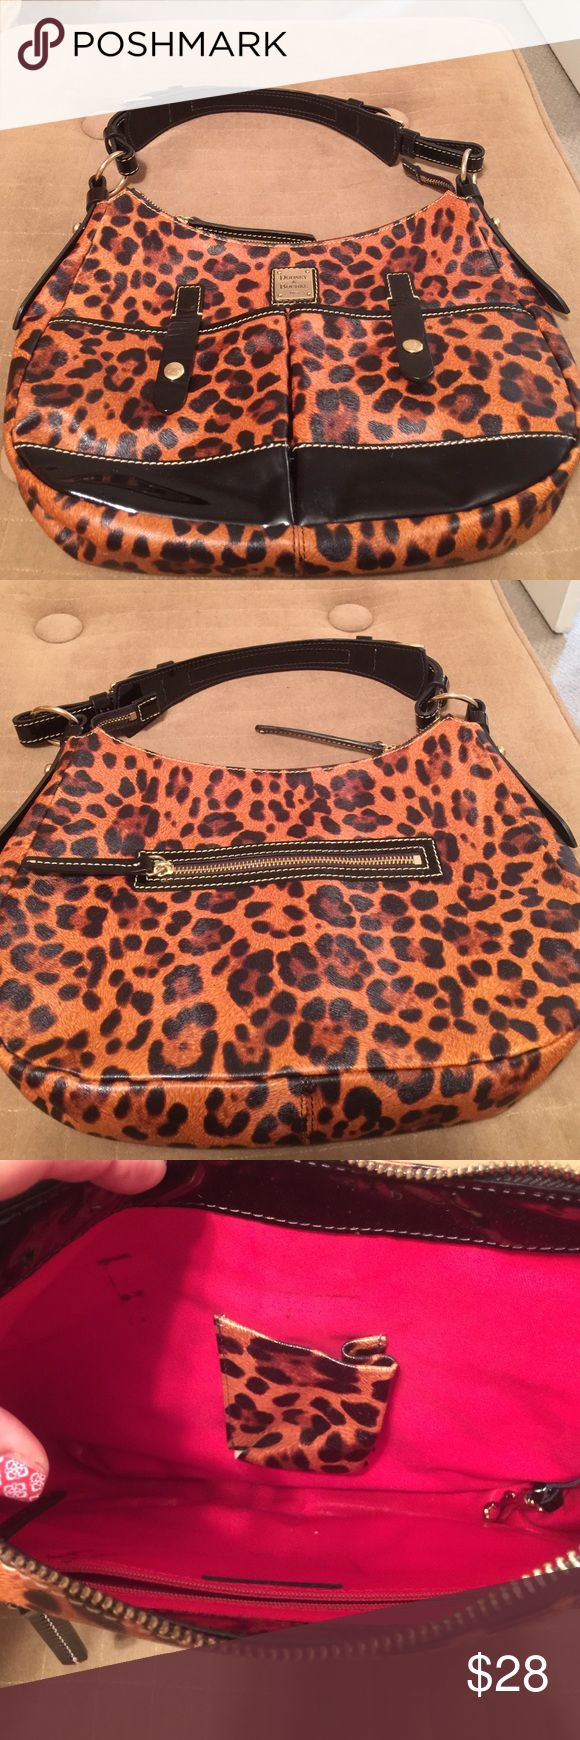 Dooney and Bourke Animal print shoulder bag This bag is a rubber fabrication. It has a few stains only on the pink lining. Dooney & Bourke Bags Shoulder Bags